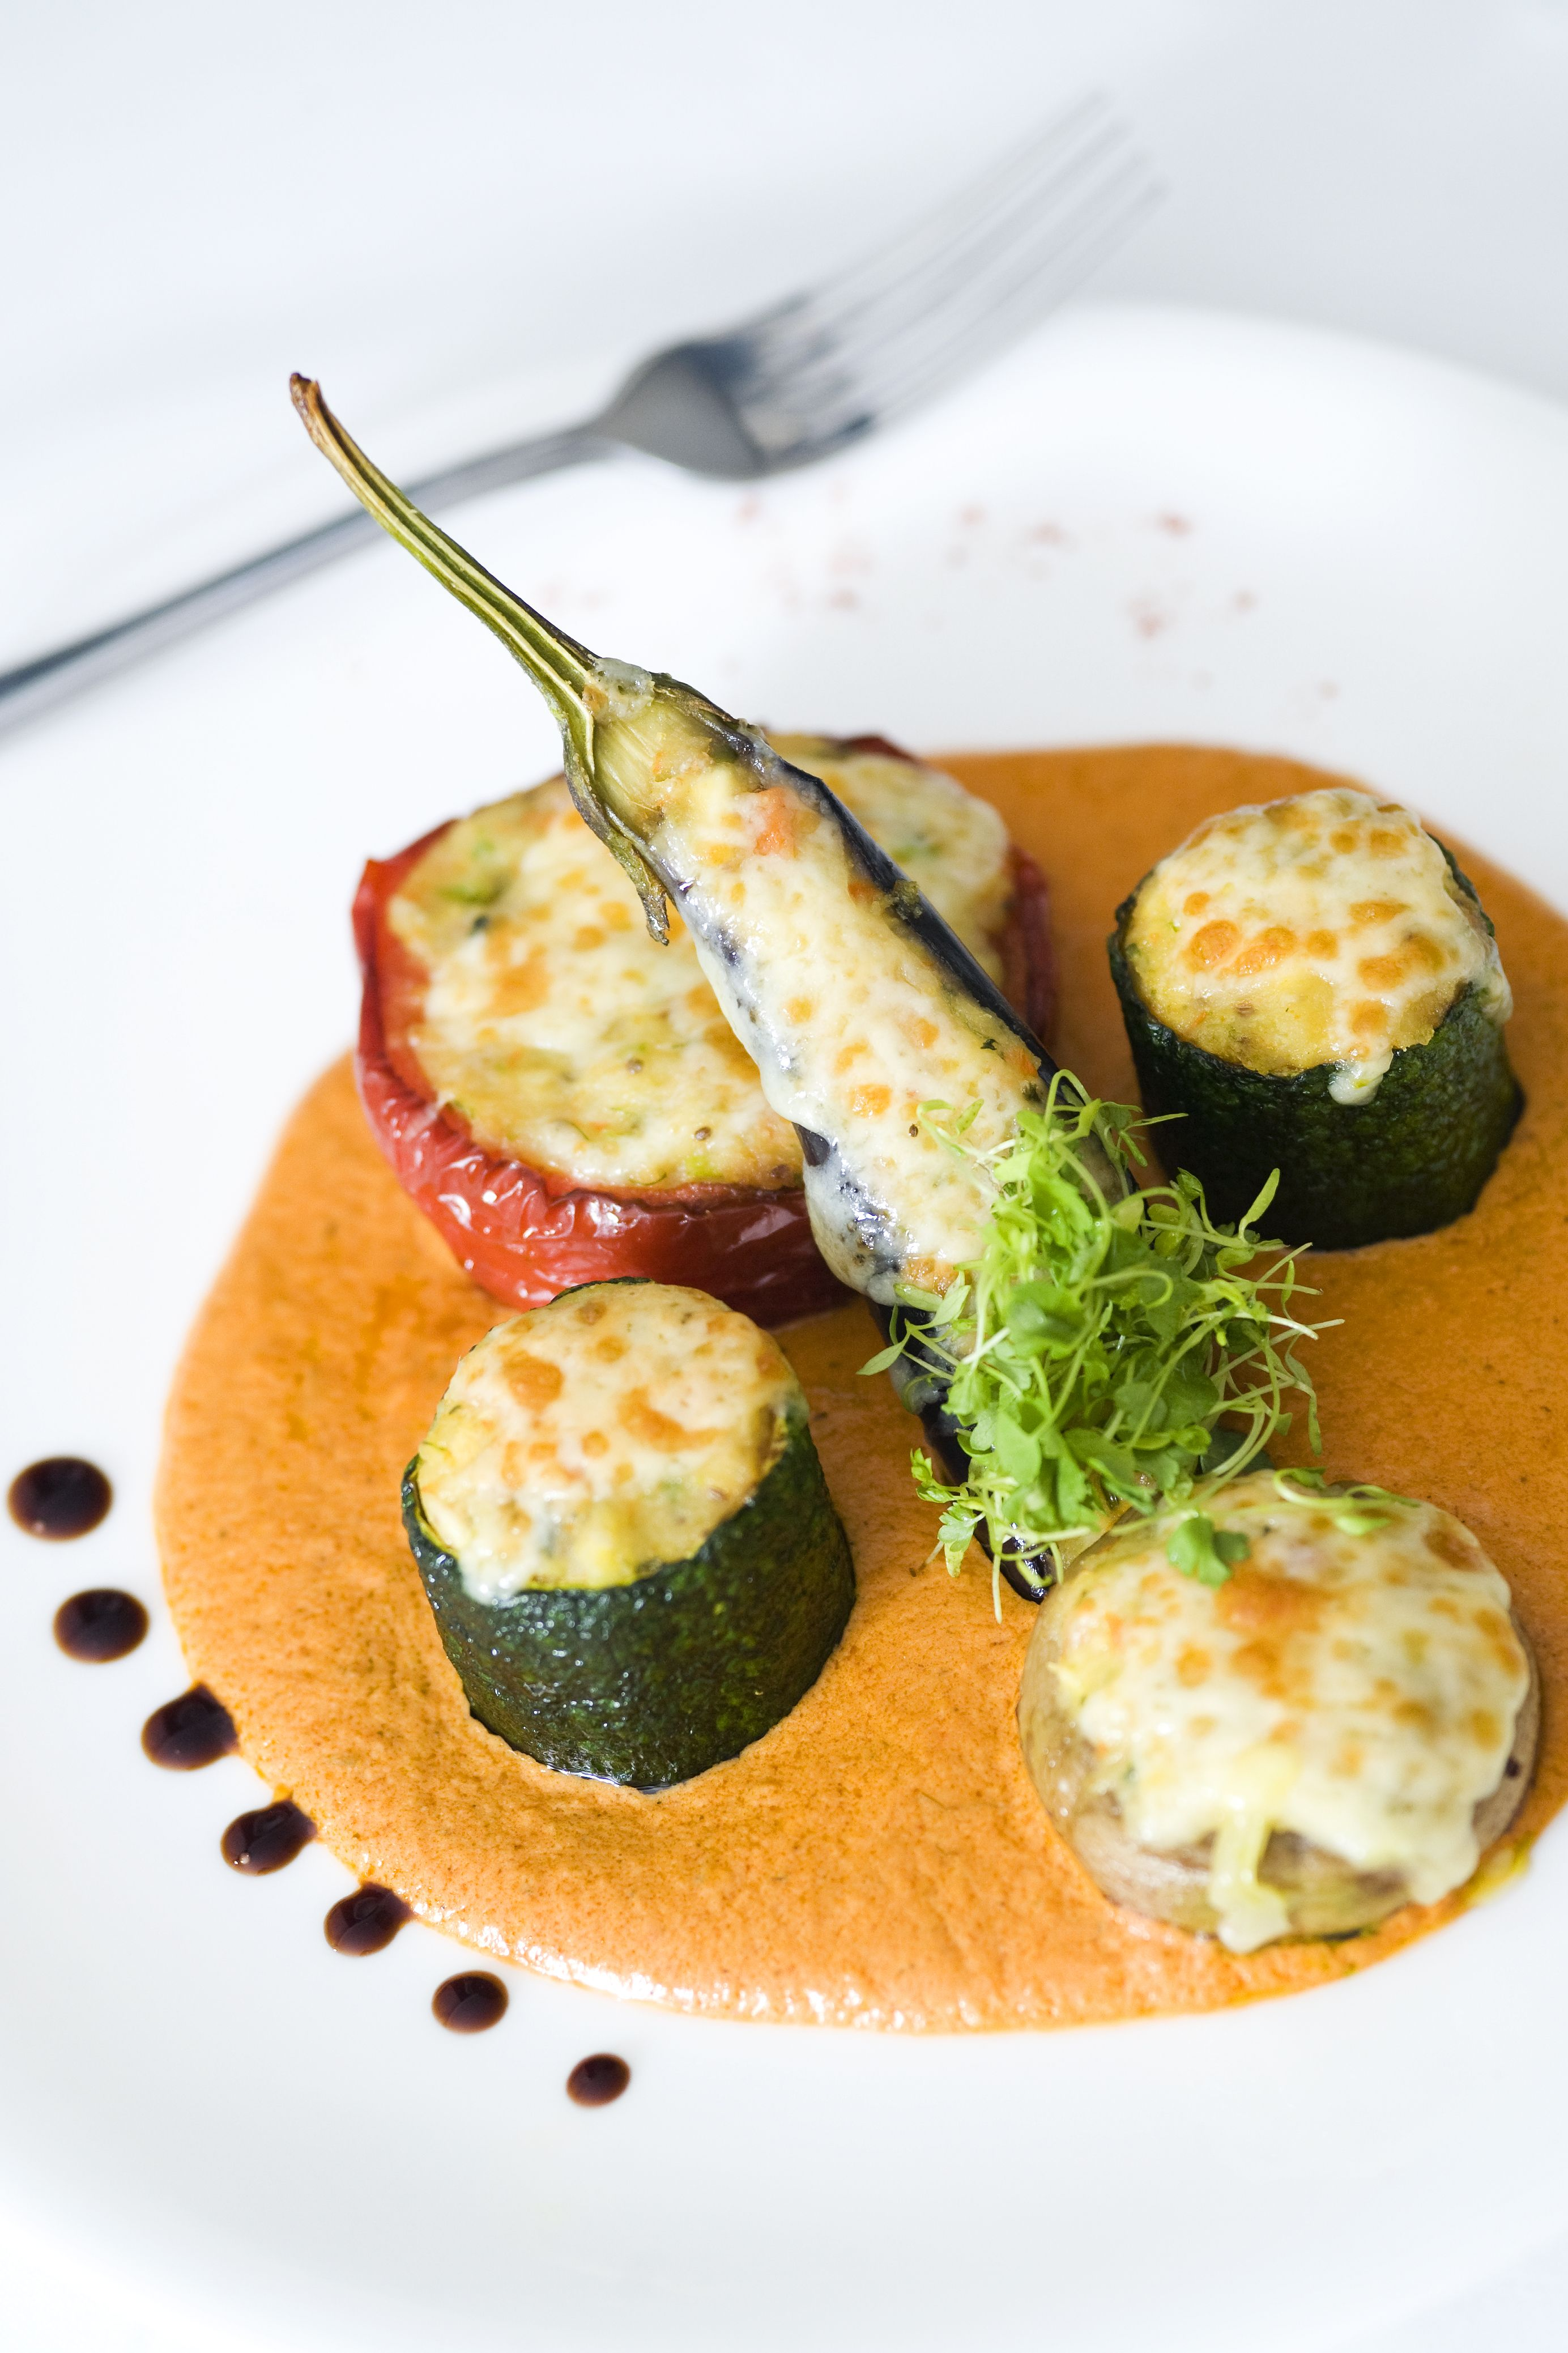 Indian restaurant Lilu brings exotic Indian fine dining to